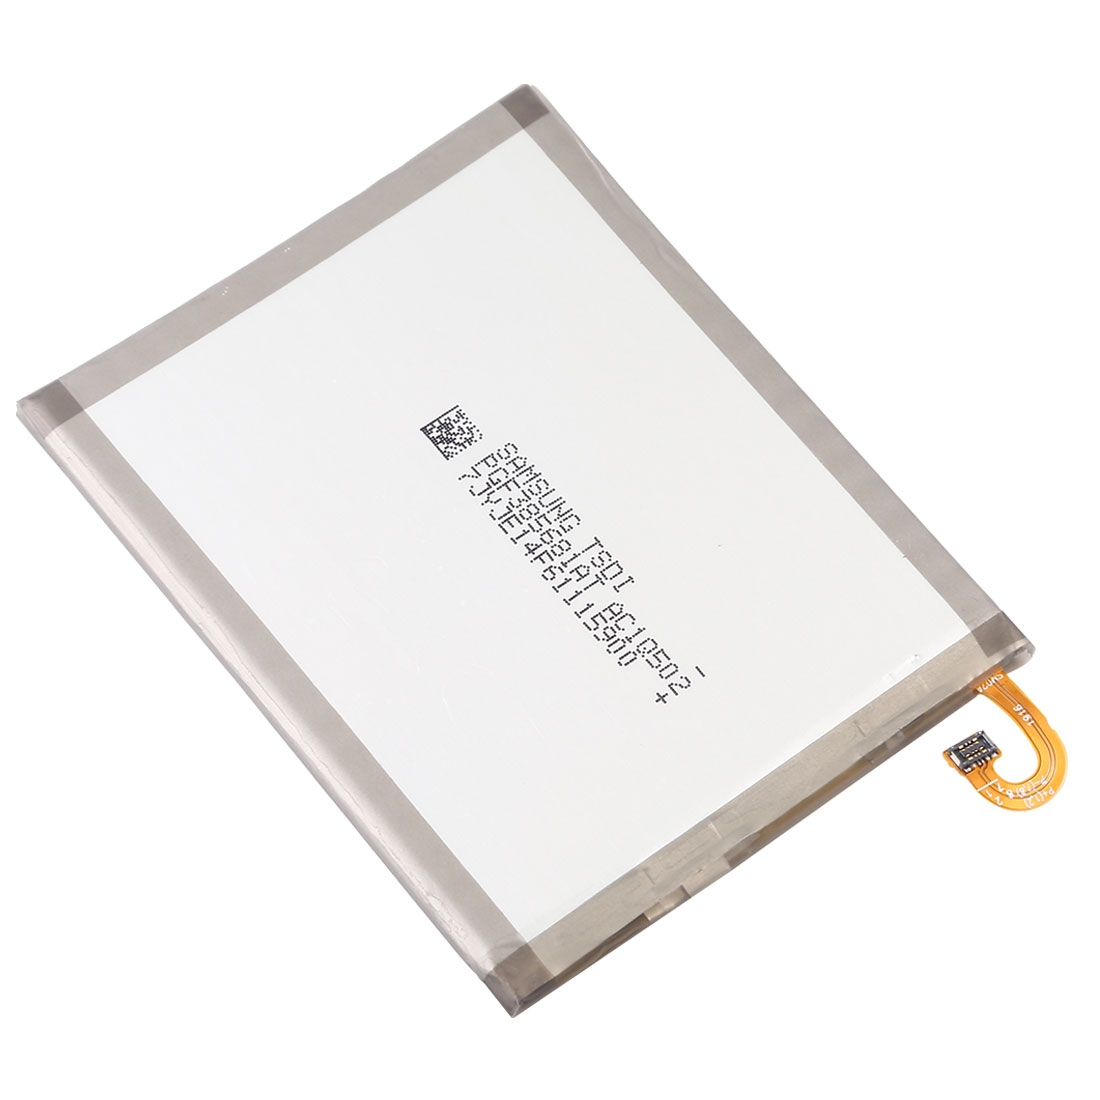 3300mAh Mobile Phone Replacement Battery for Galaxy A750 / A10 / M10